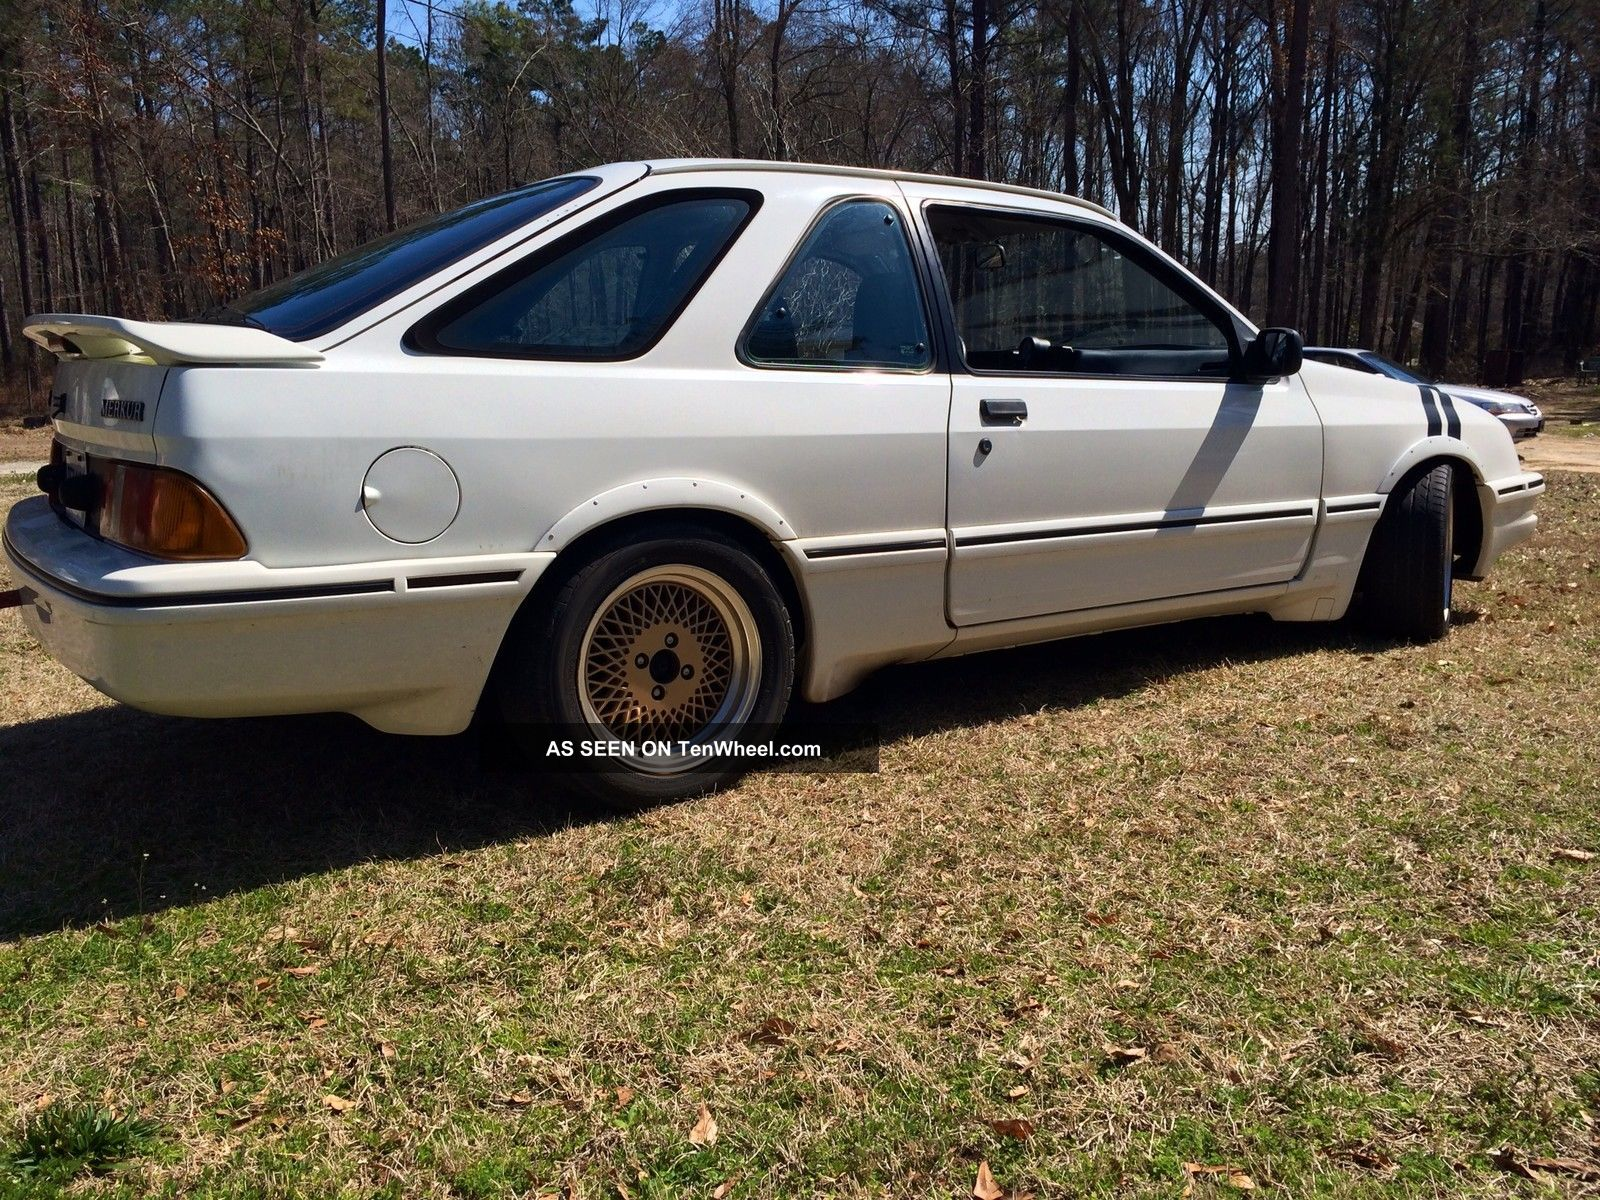 1988 Ford Mekur Xr4ti Other photo